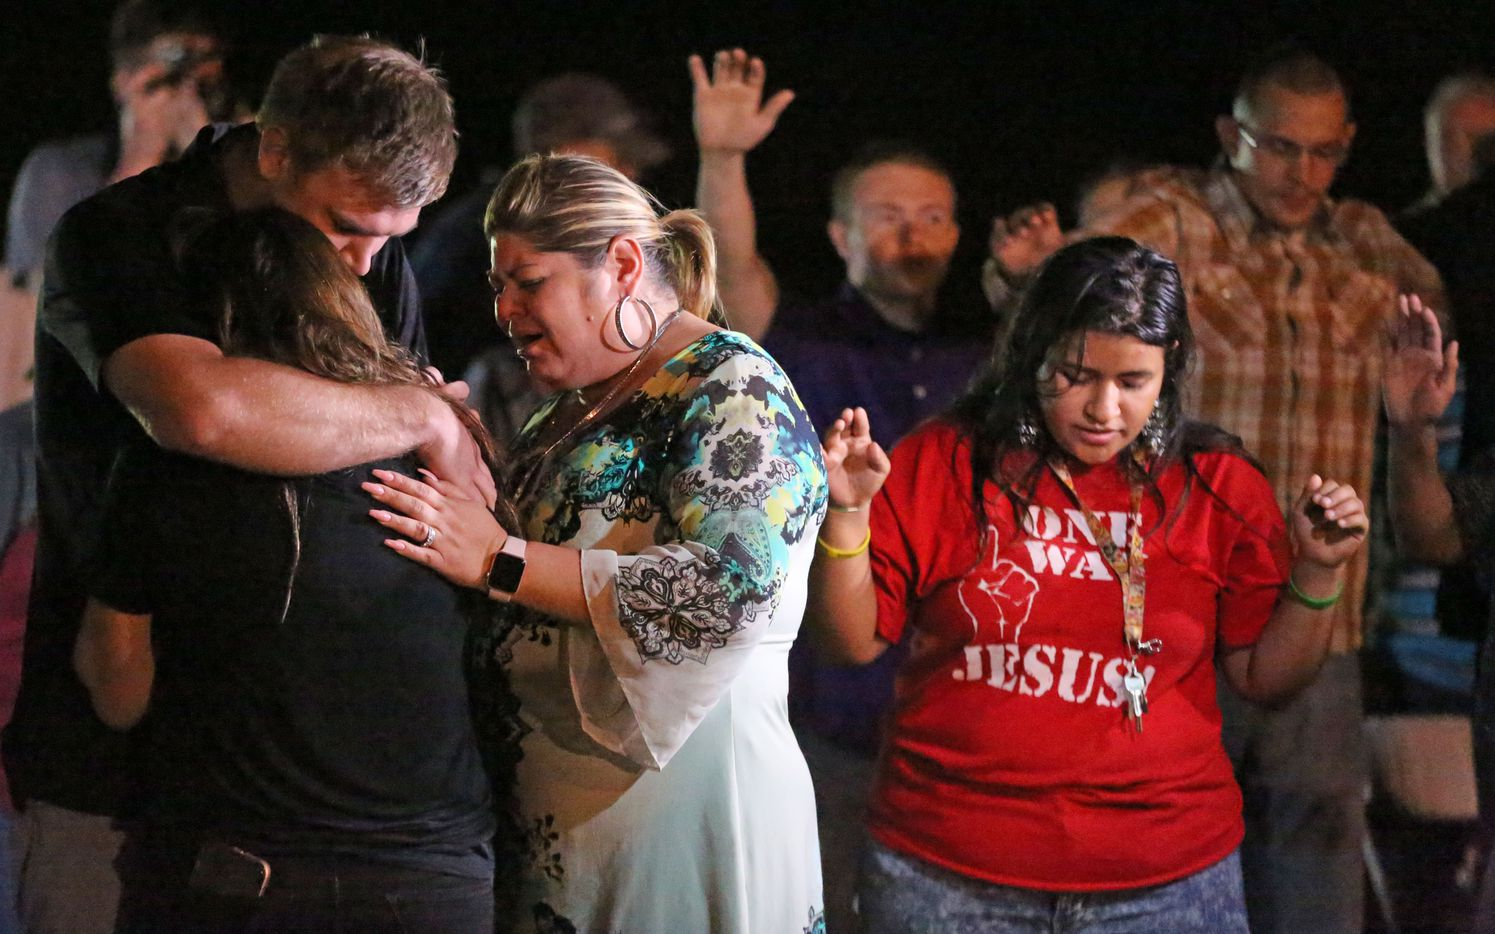 Emotions run high at a memorial service held at the baseball field in Sutherland Springs, Texas to honor those who were killed in Sunday's mass shooting, when a gunman opened fire at a Baptist church in the small town southeast of San Antonio. Photographed on Monday, November 6, 2017. (Louis DeLuca/The Dallas Morning News)